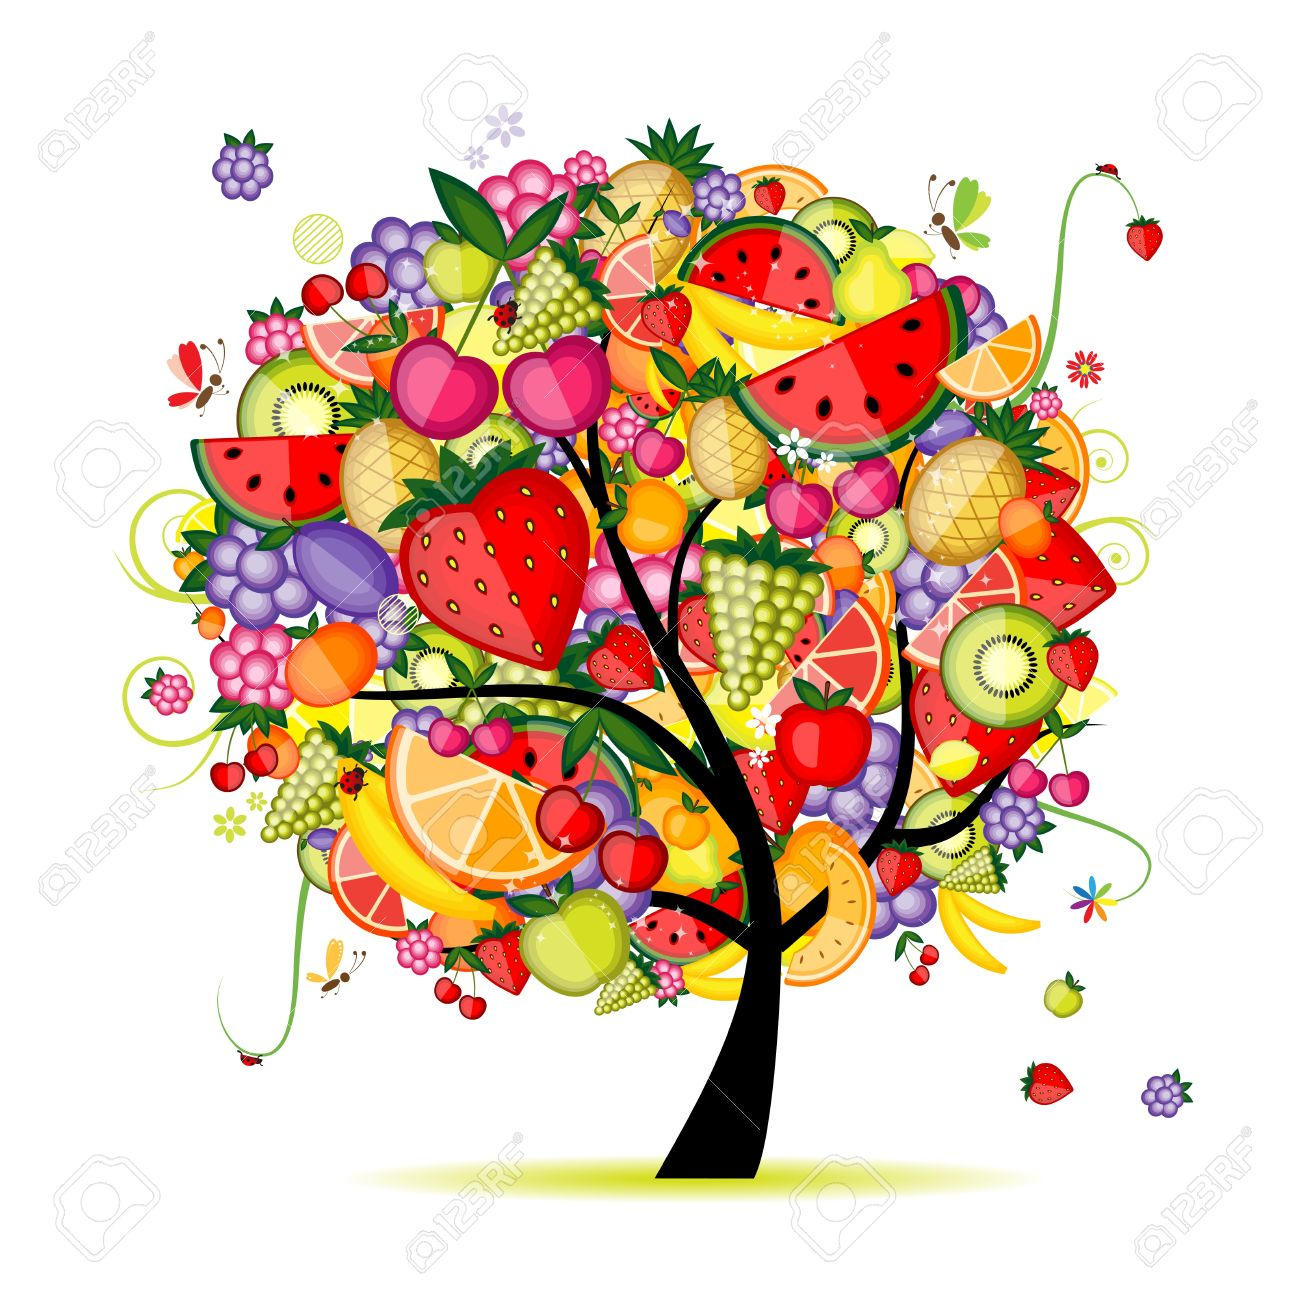 Energy fruit tree for your design Stock Vector - 8362587